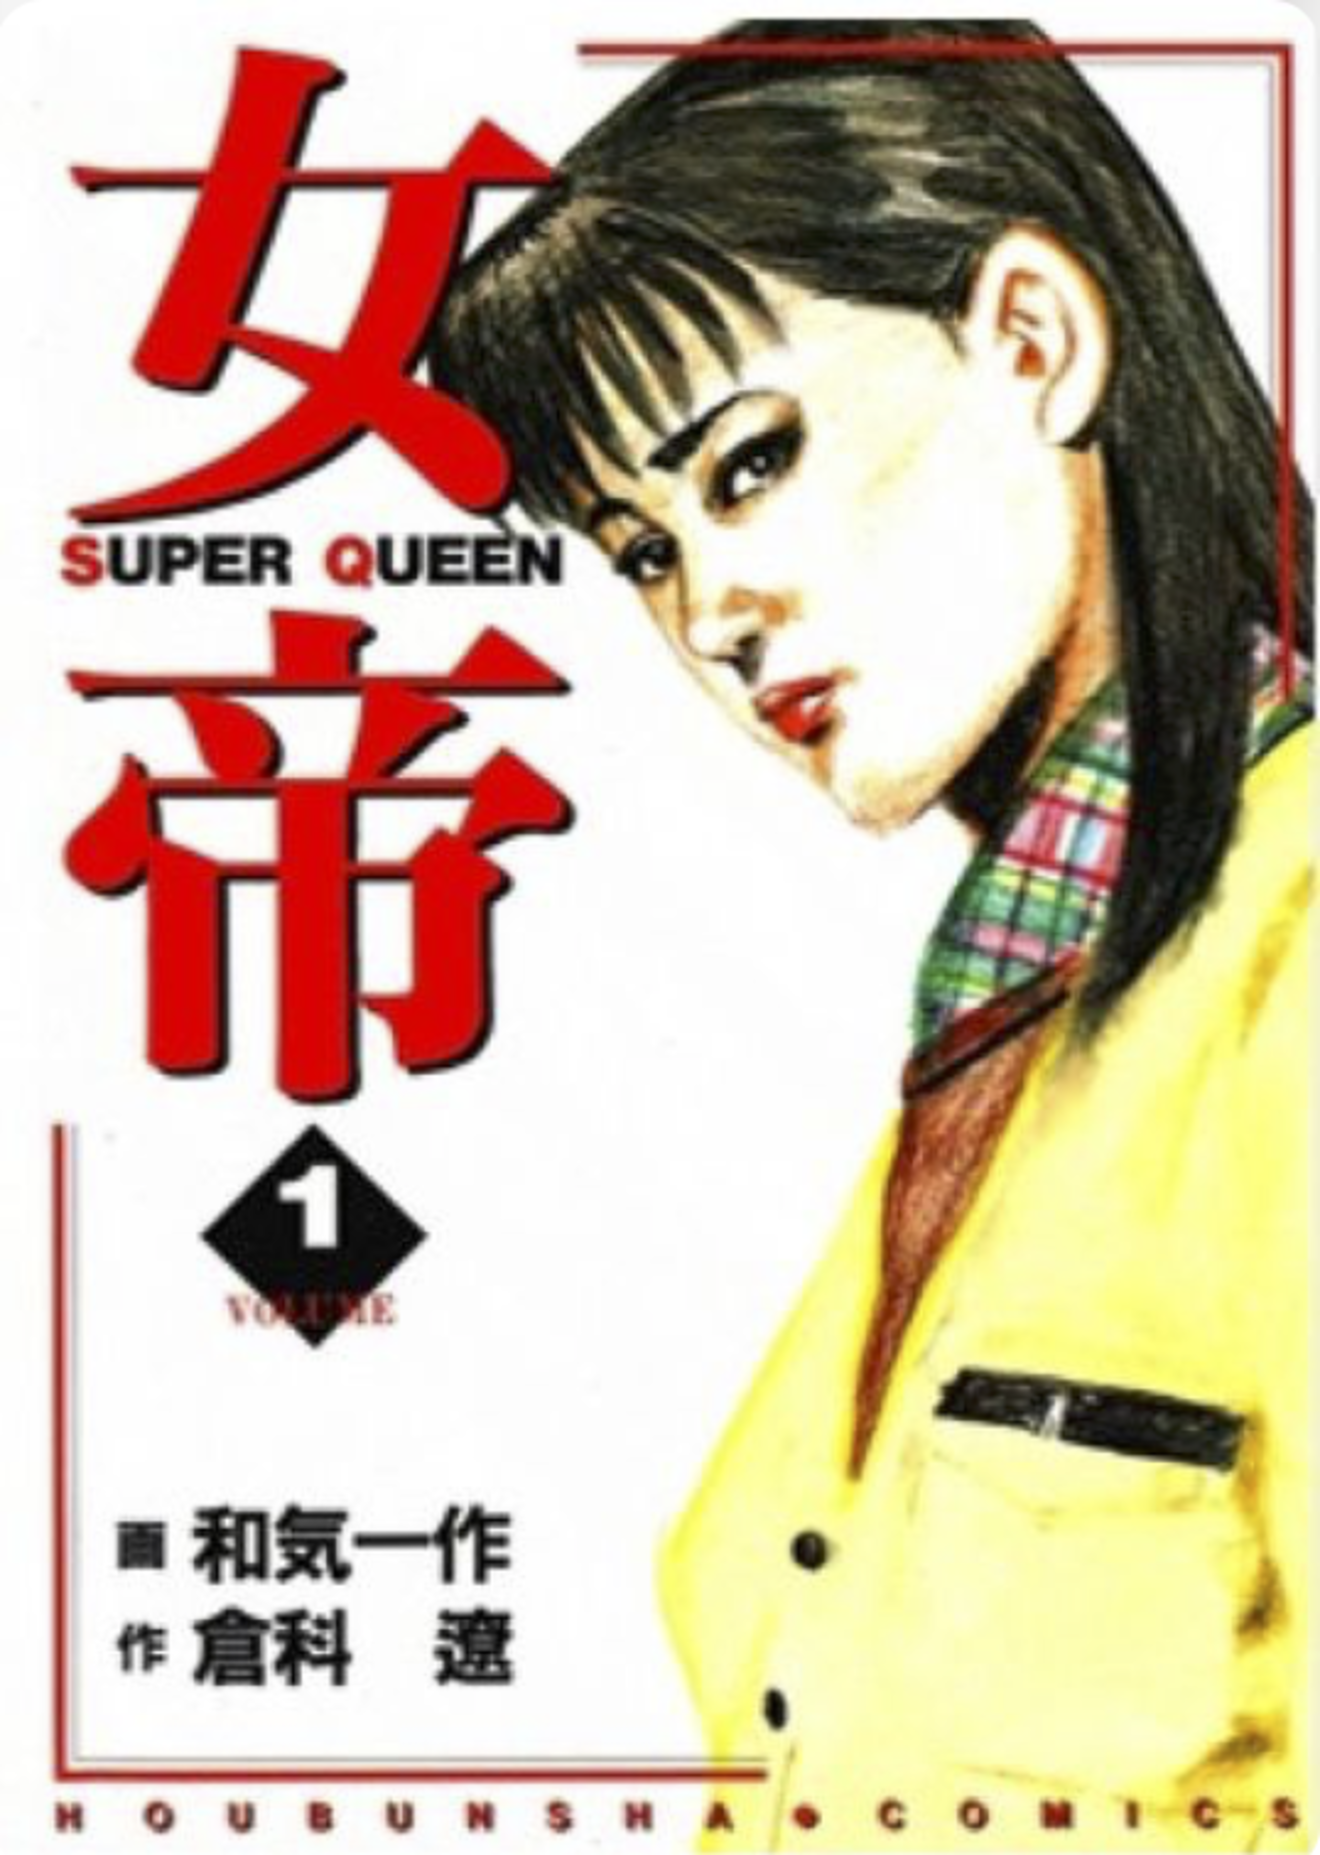 漫画『女帝』が面白い!全24巻、彩香の激動の人生をネタバレ紹介!